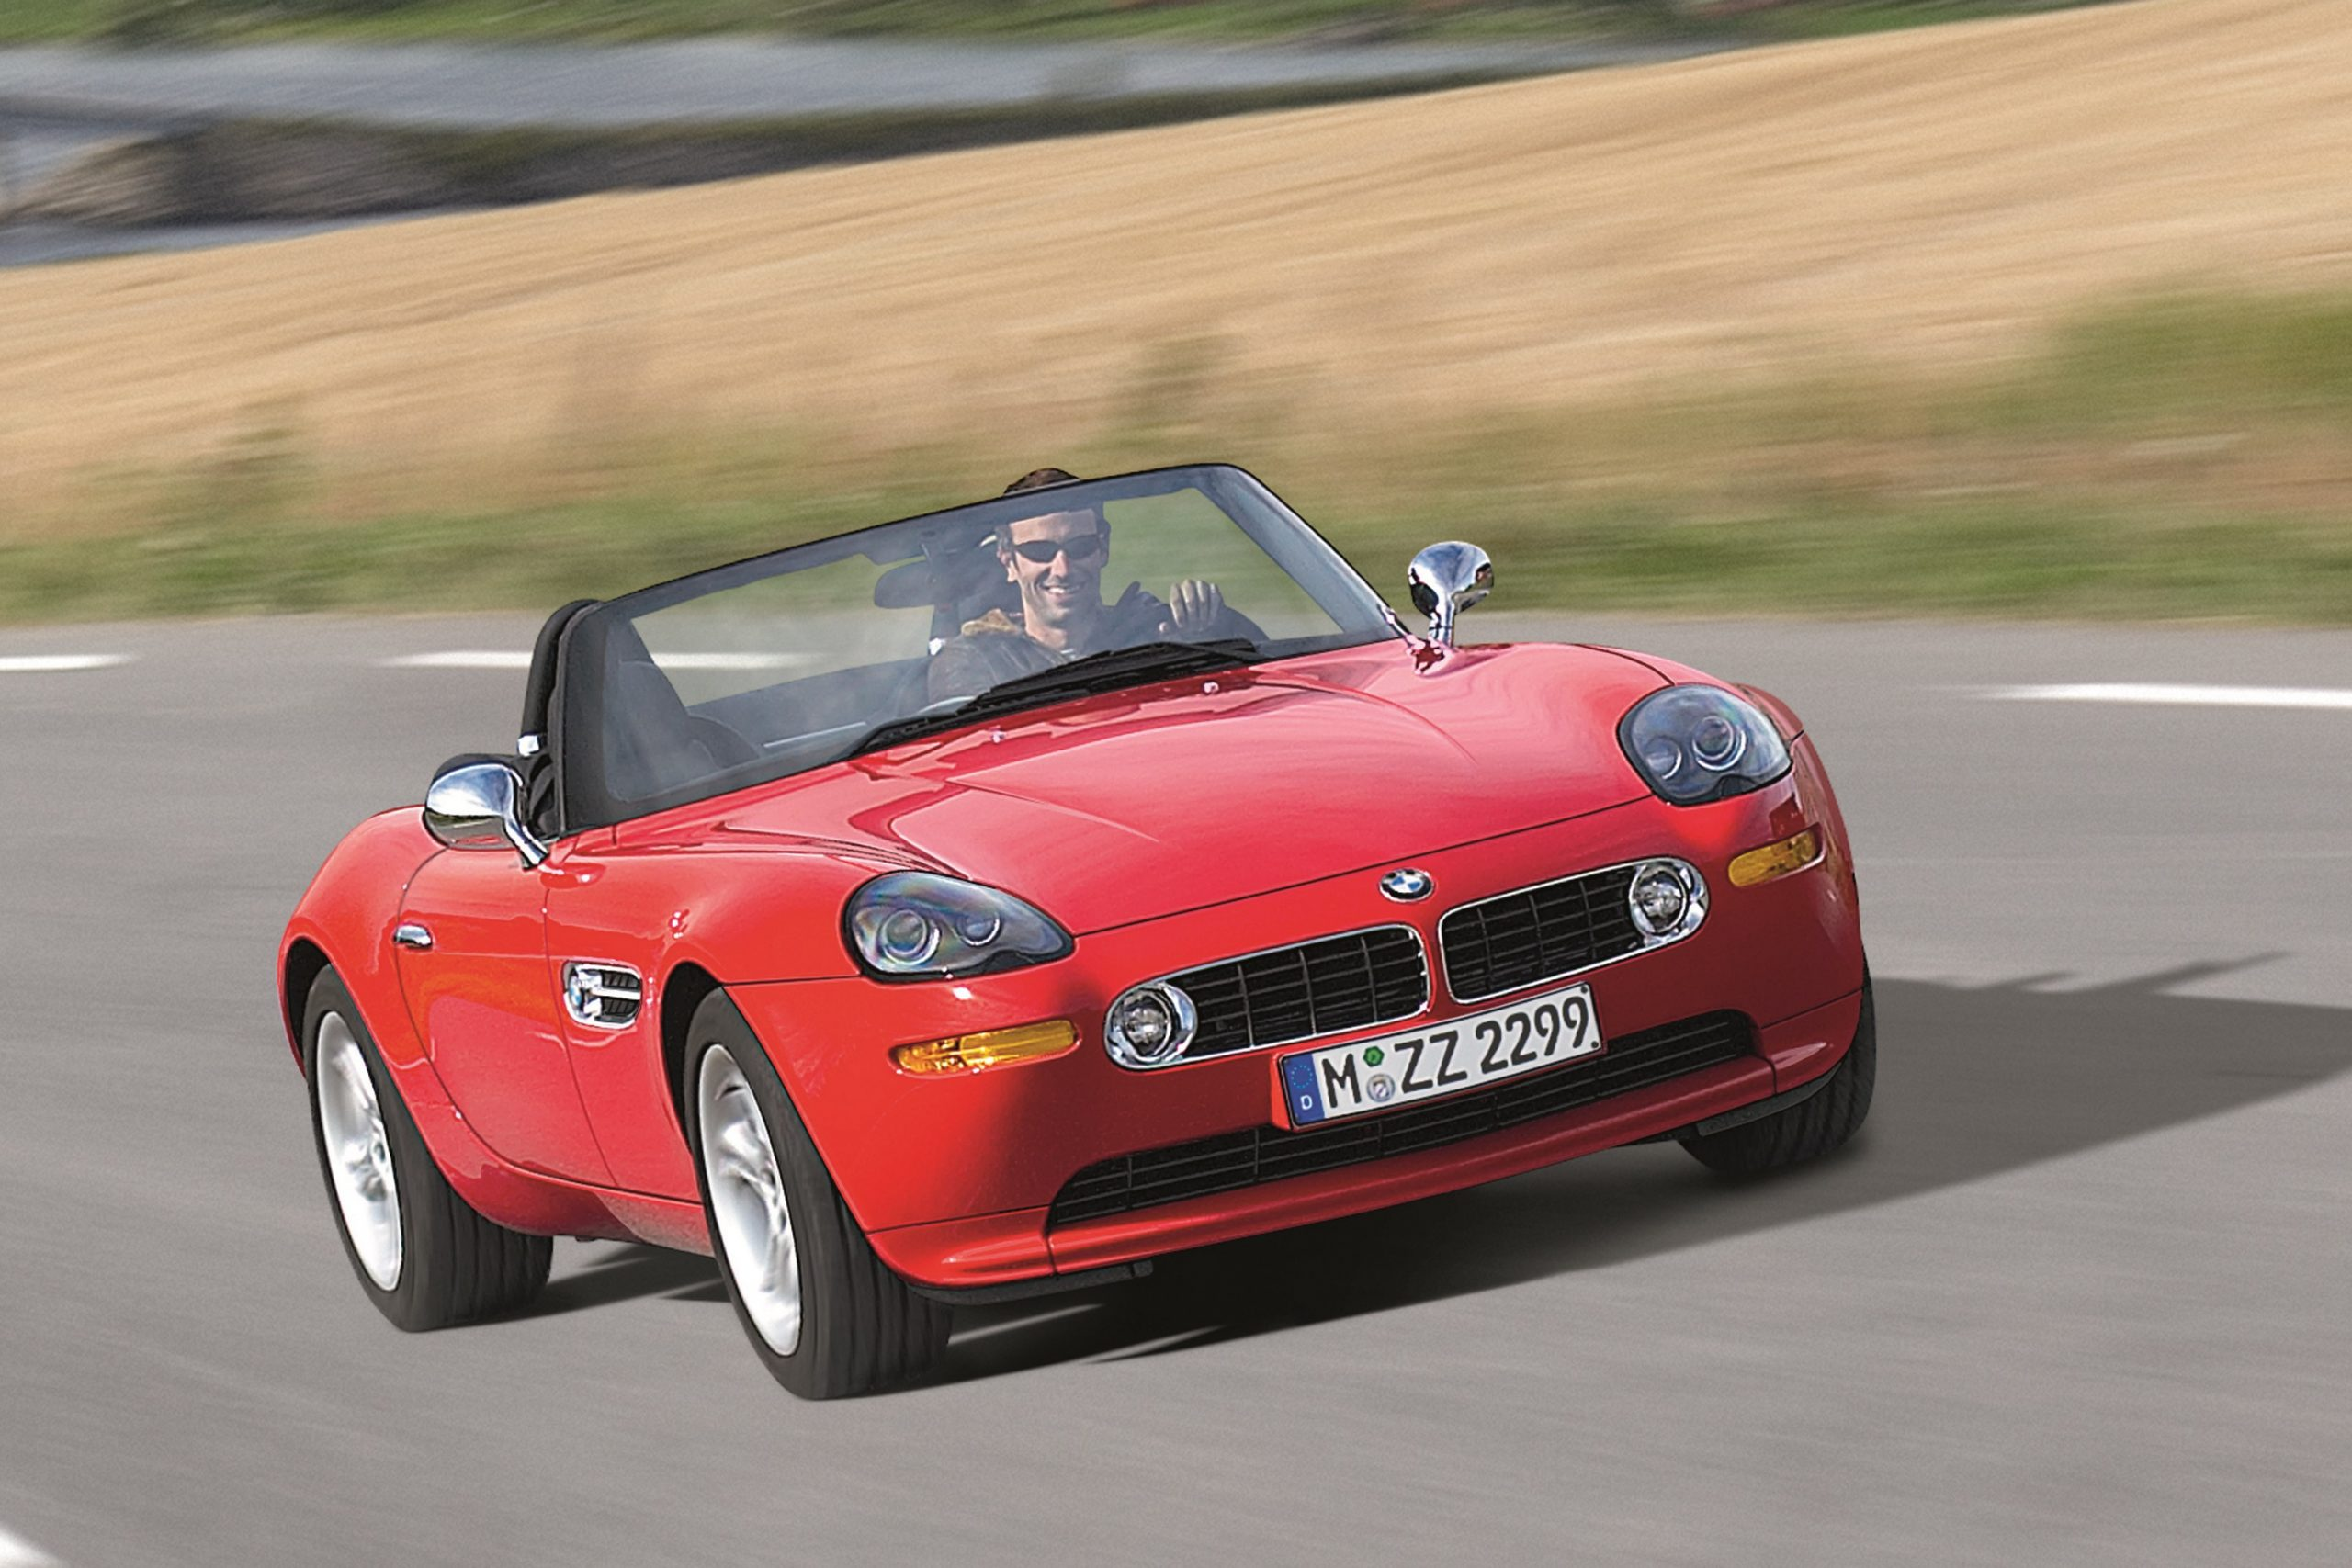 A red BMW Z8 convertible shot in motion from the front